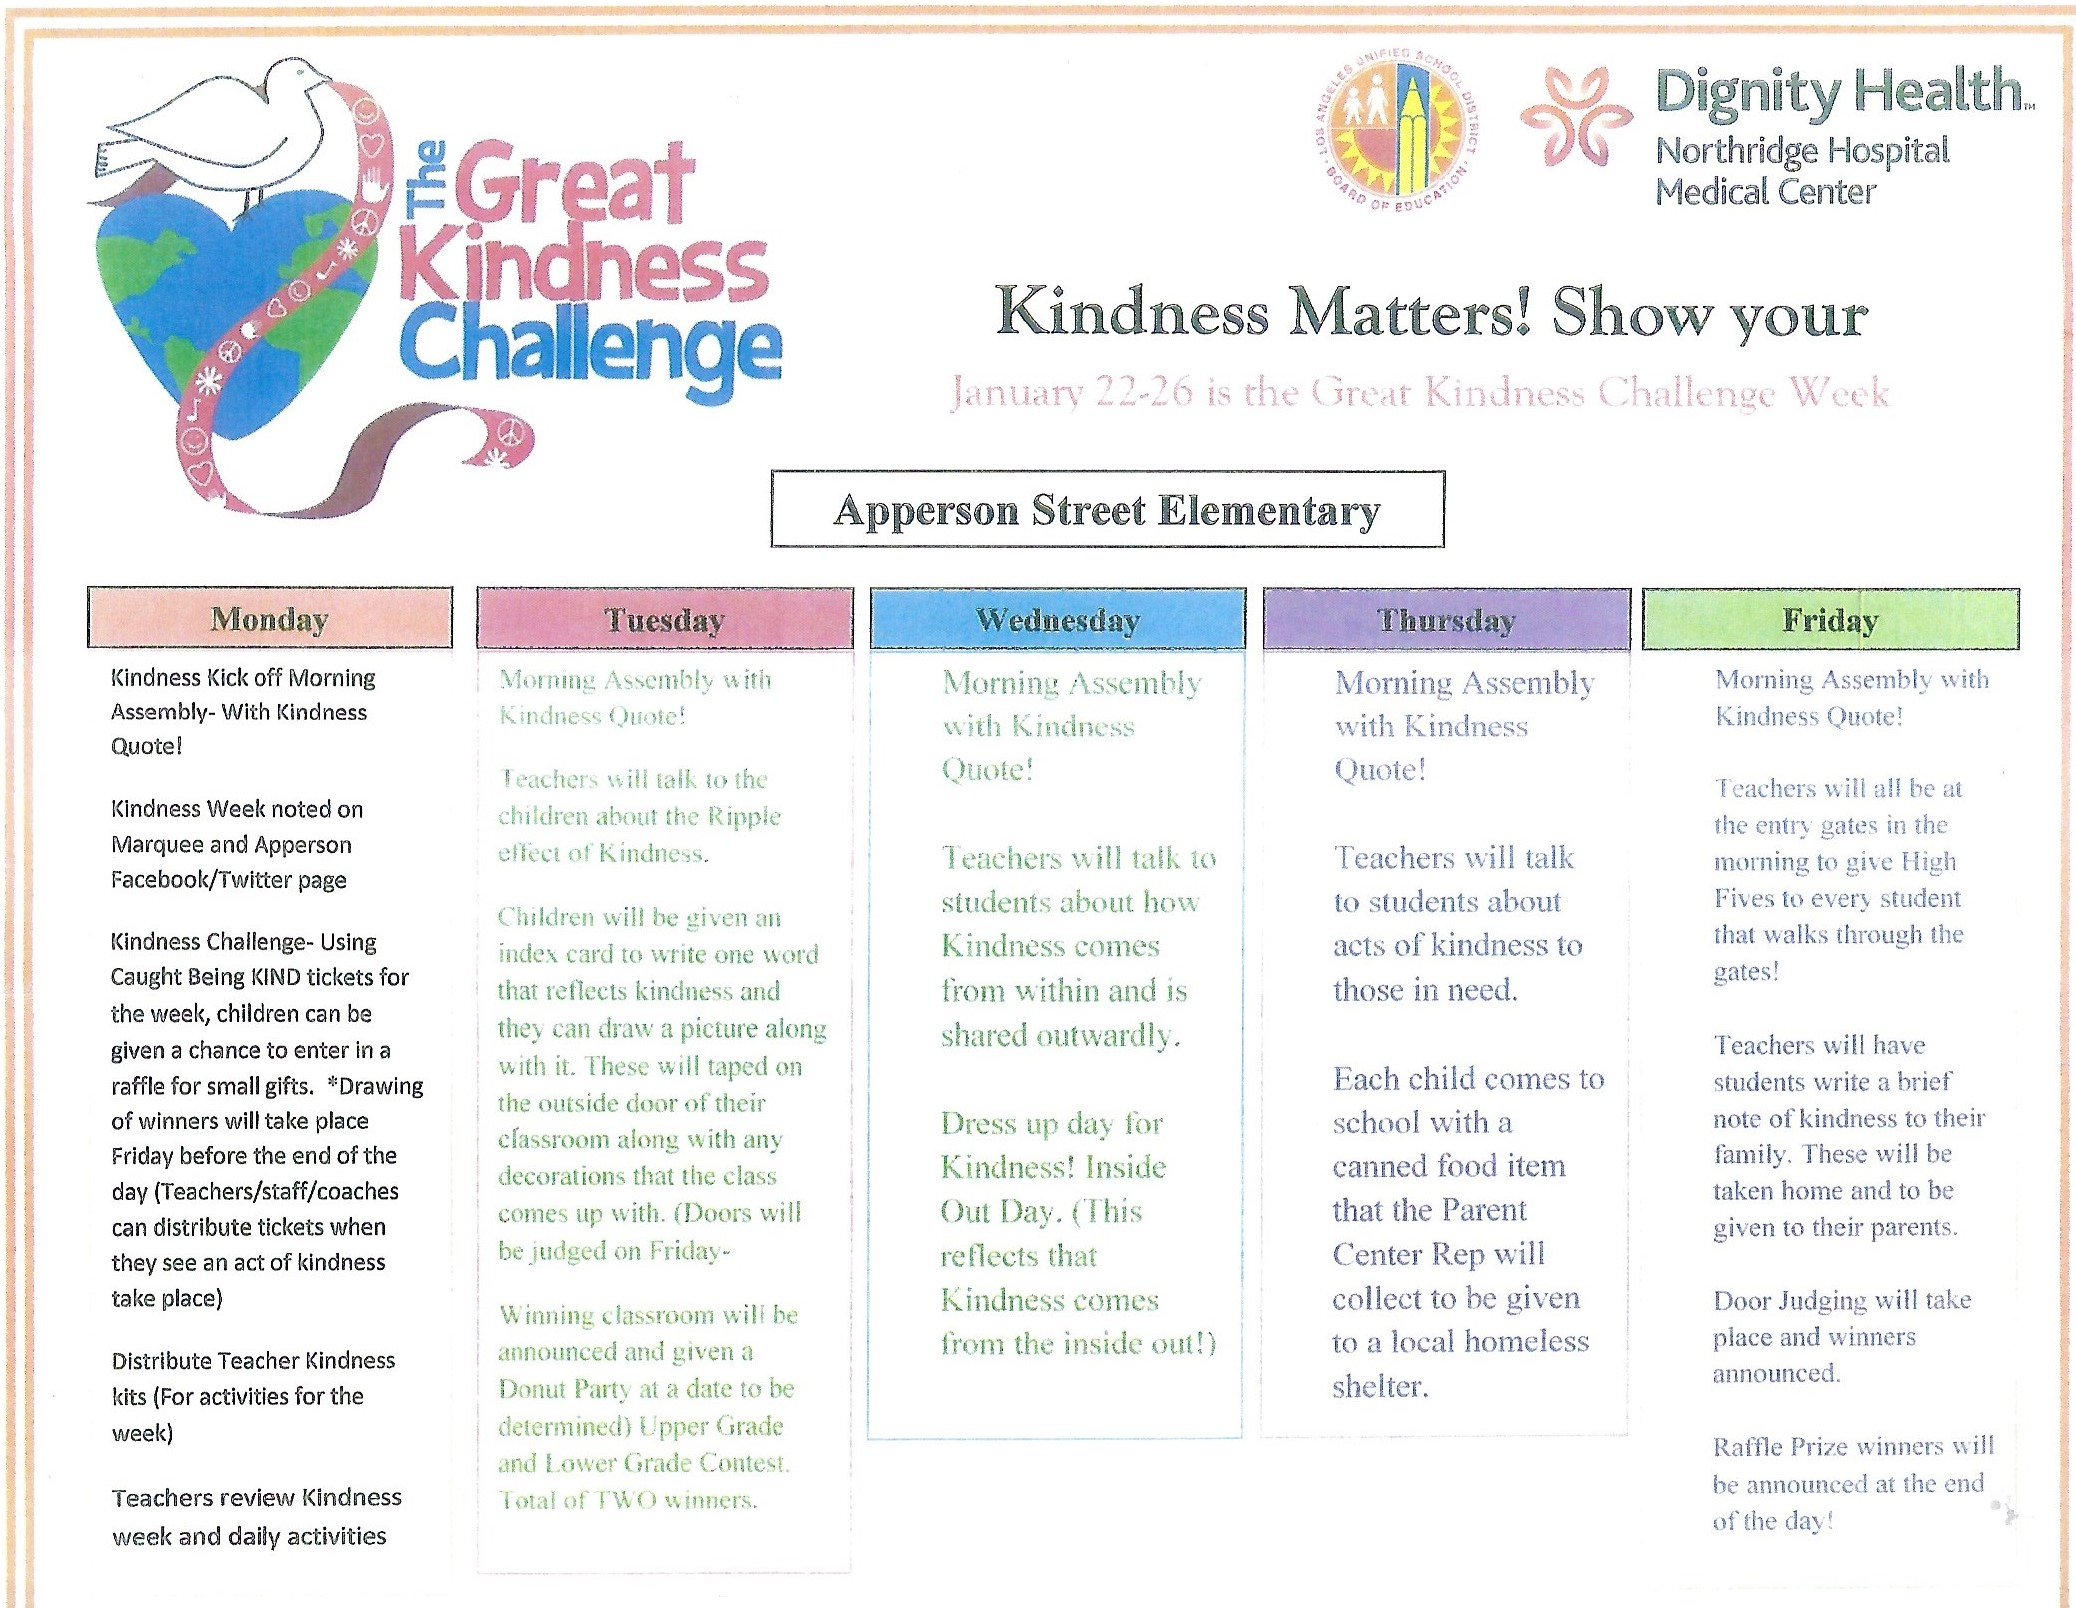 A week s worth of activities for The Great Kindness Challenge